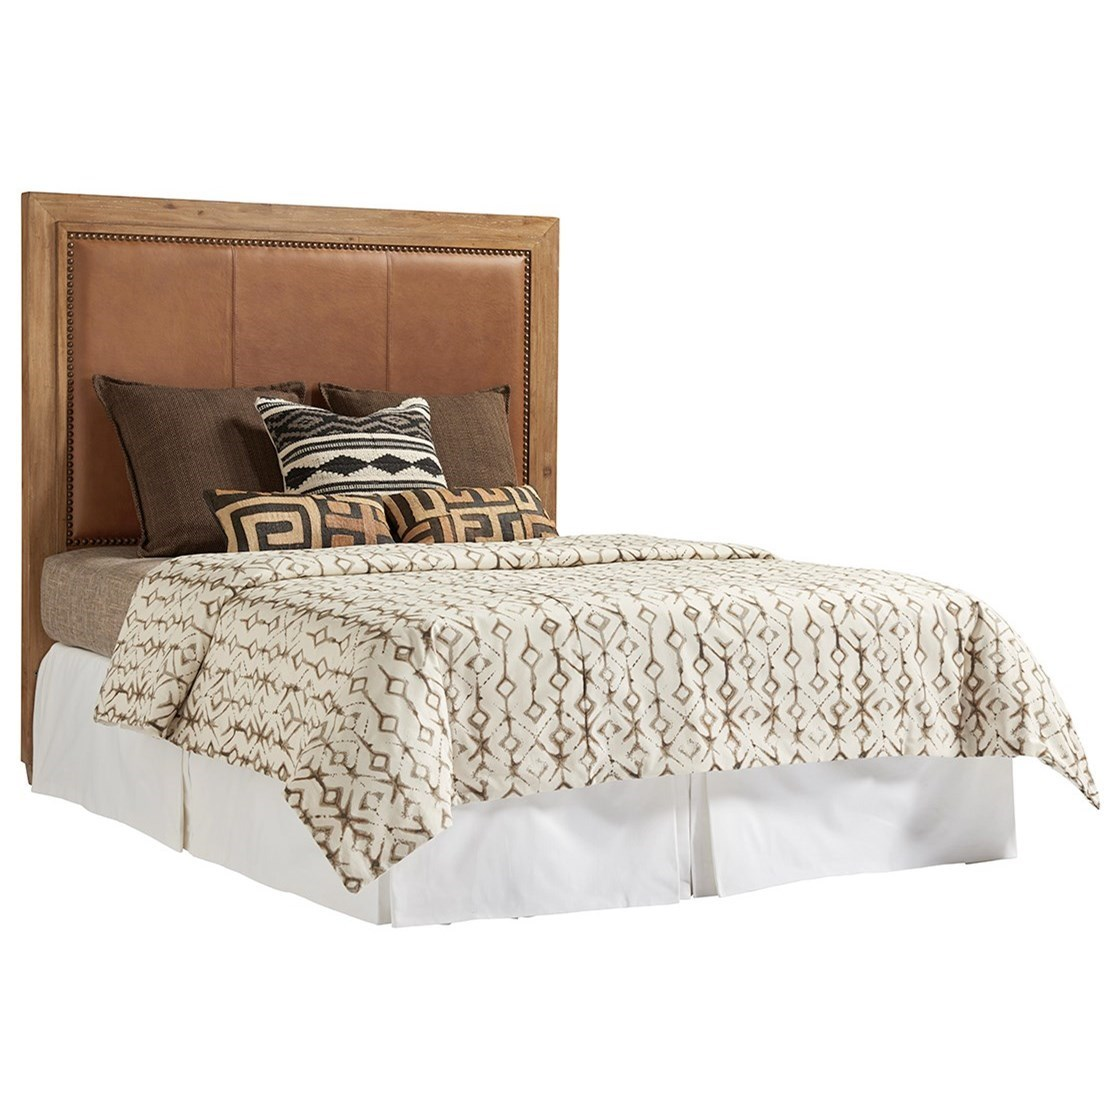 Antilles Queen Size Headboard with Rustic Stitched Leather Insert and Nailheads